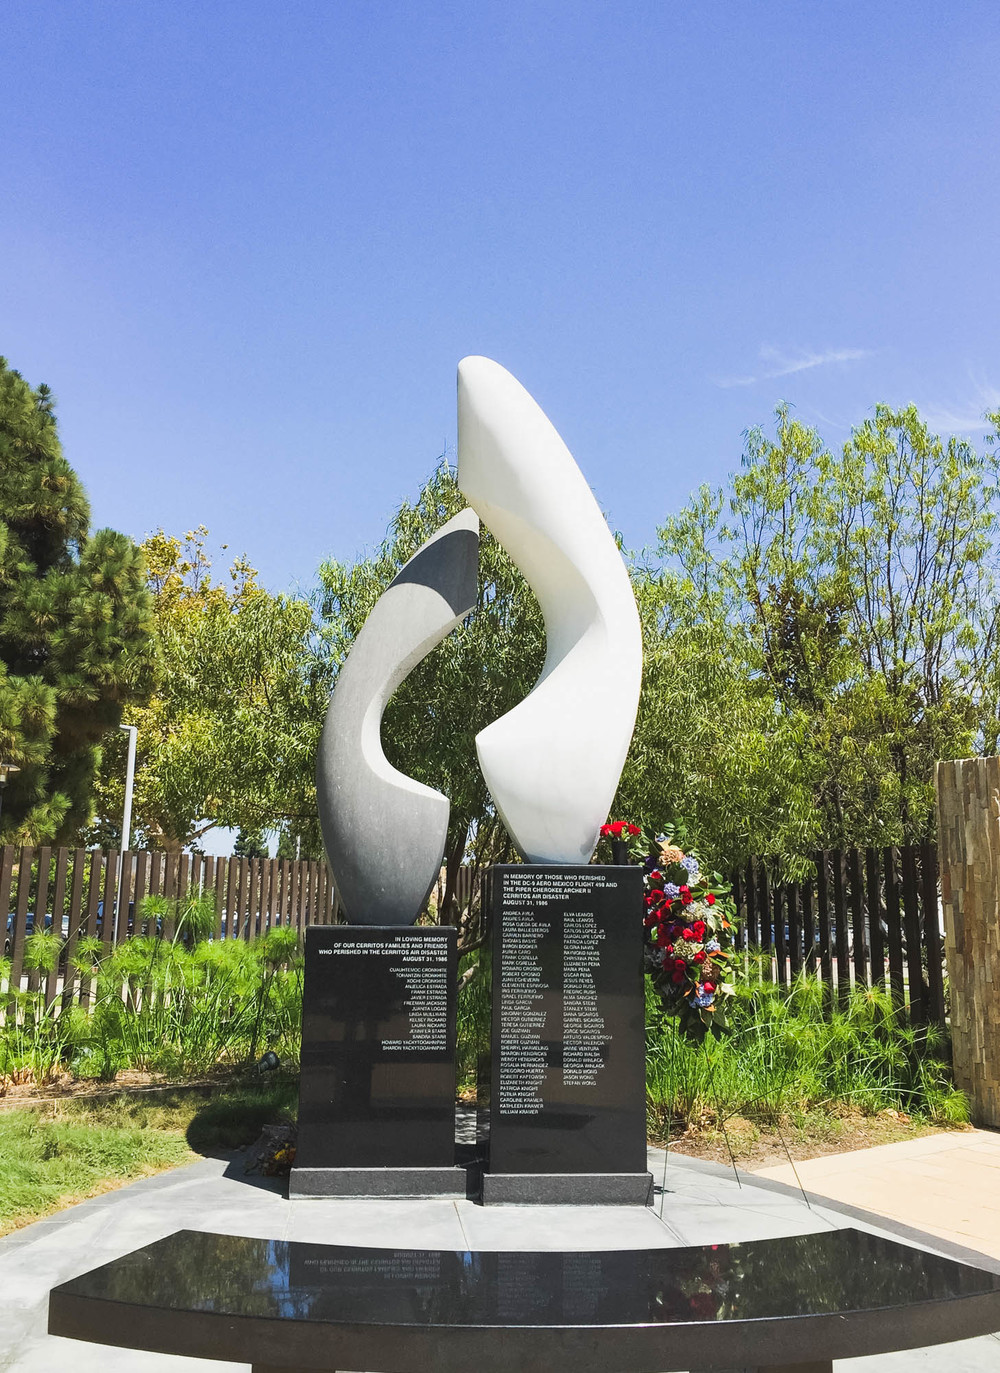 cerritos sculpture garden2.jpg